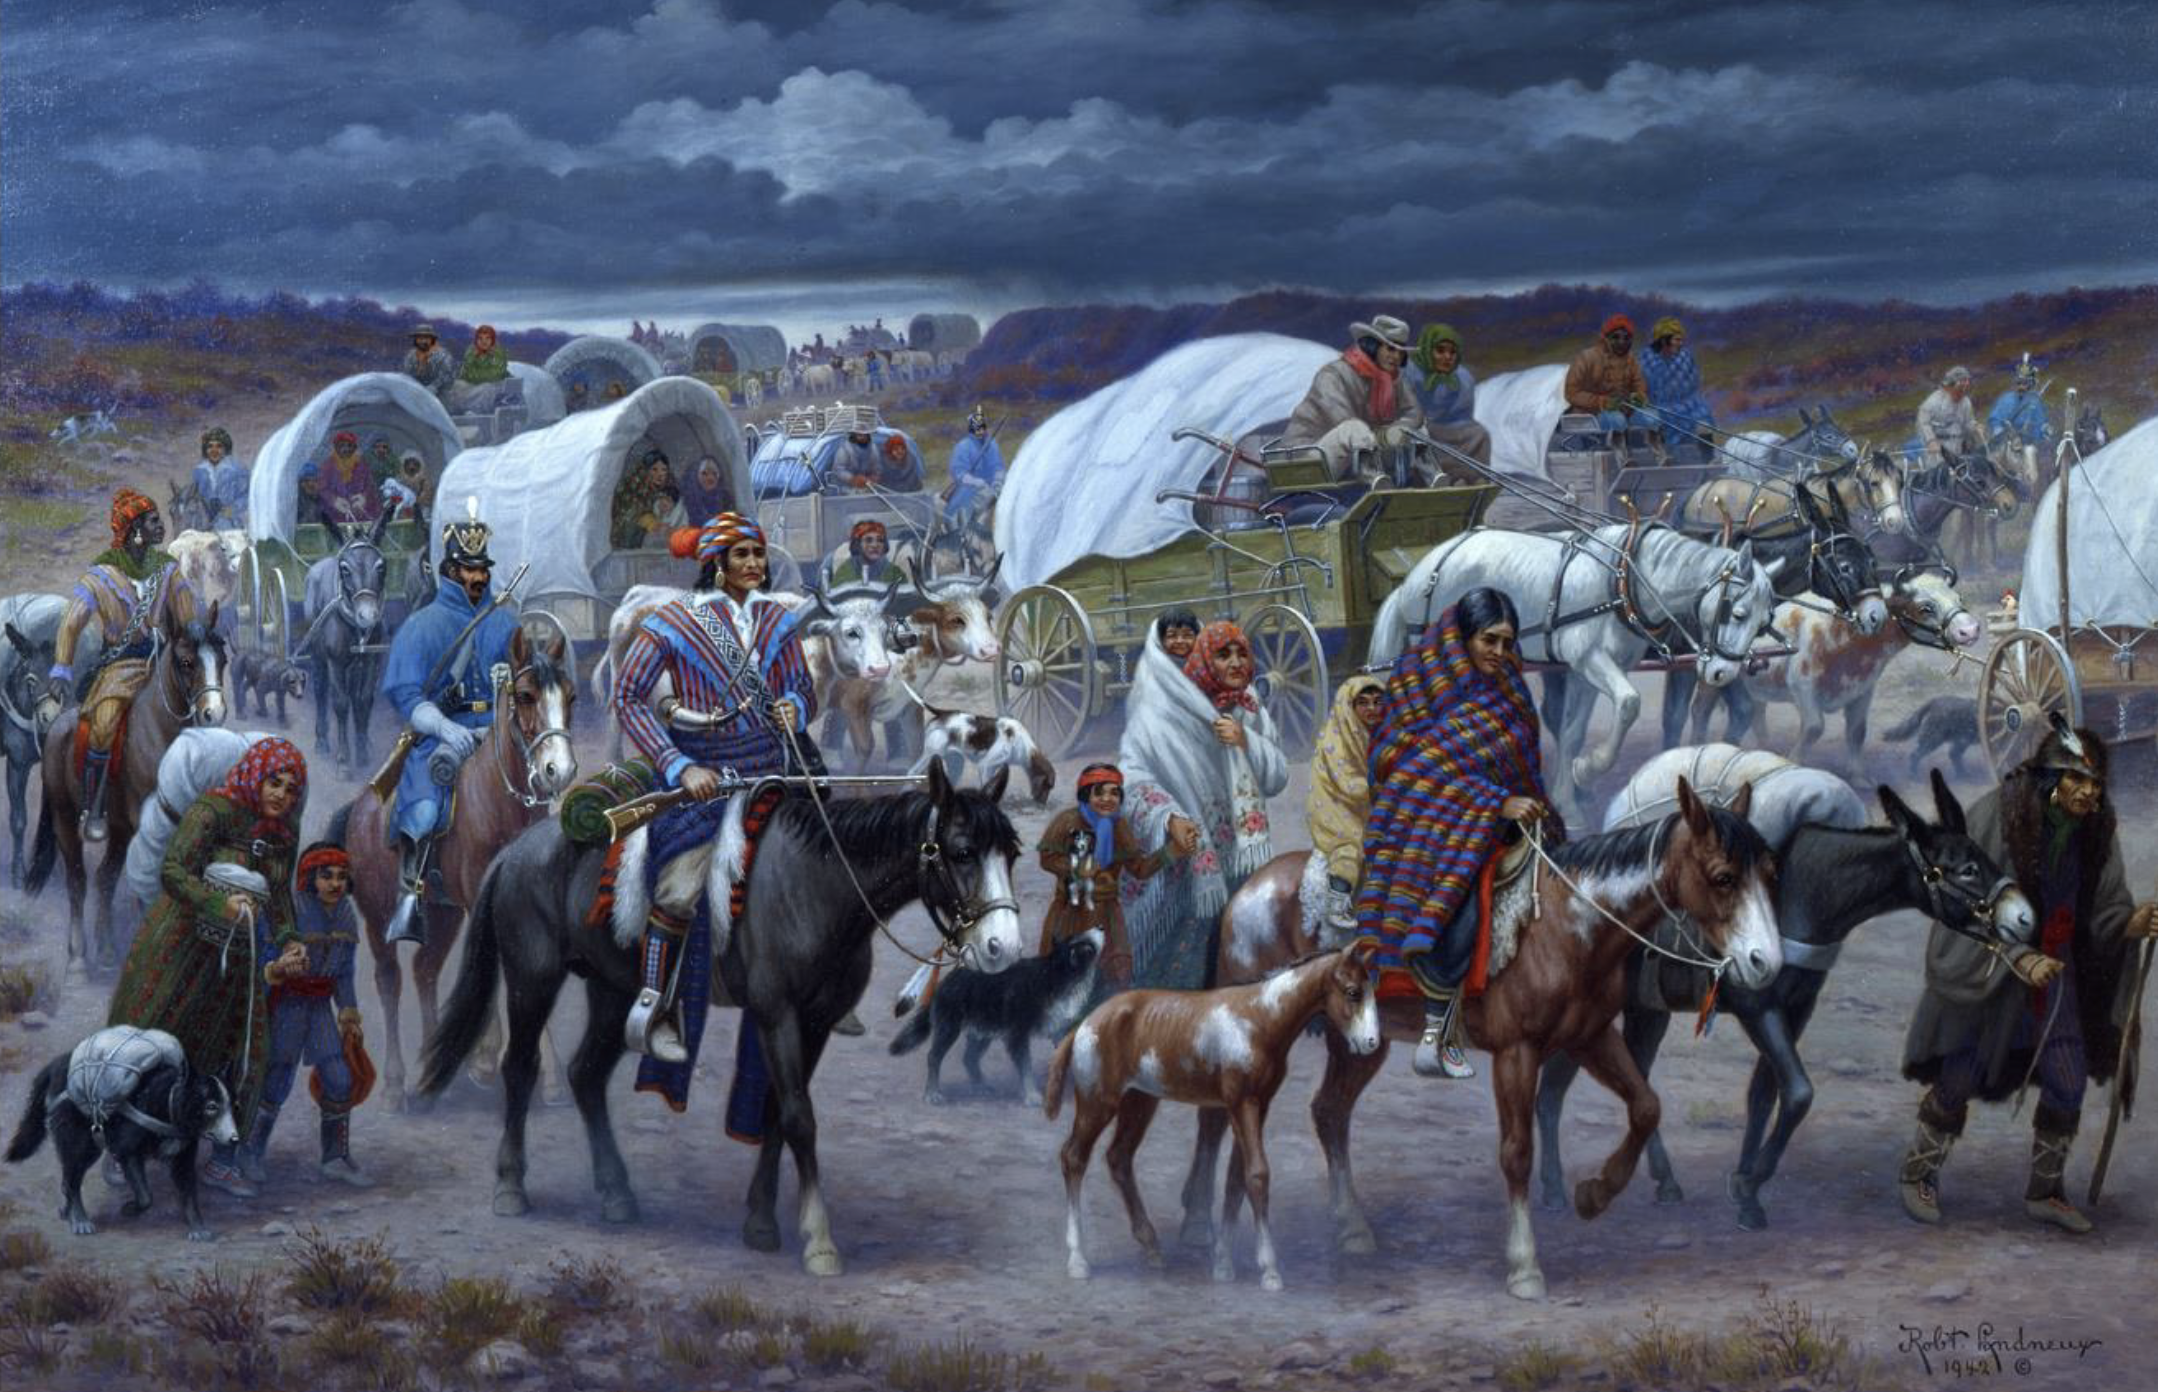 Robert Lindneux, the Trail of Tears, Woolaroc Museum, Bartlesville, Oklahoma, 1942.